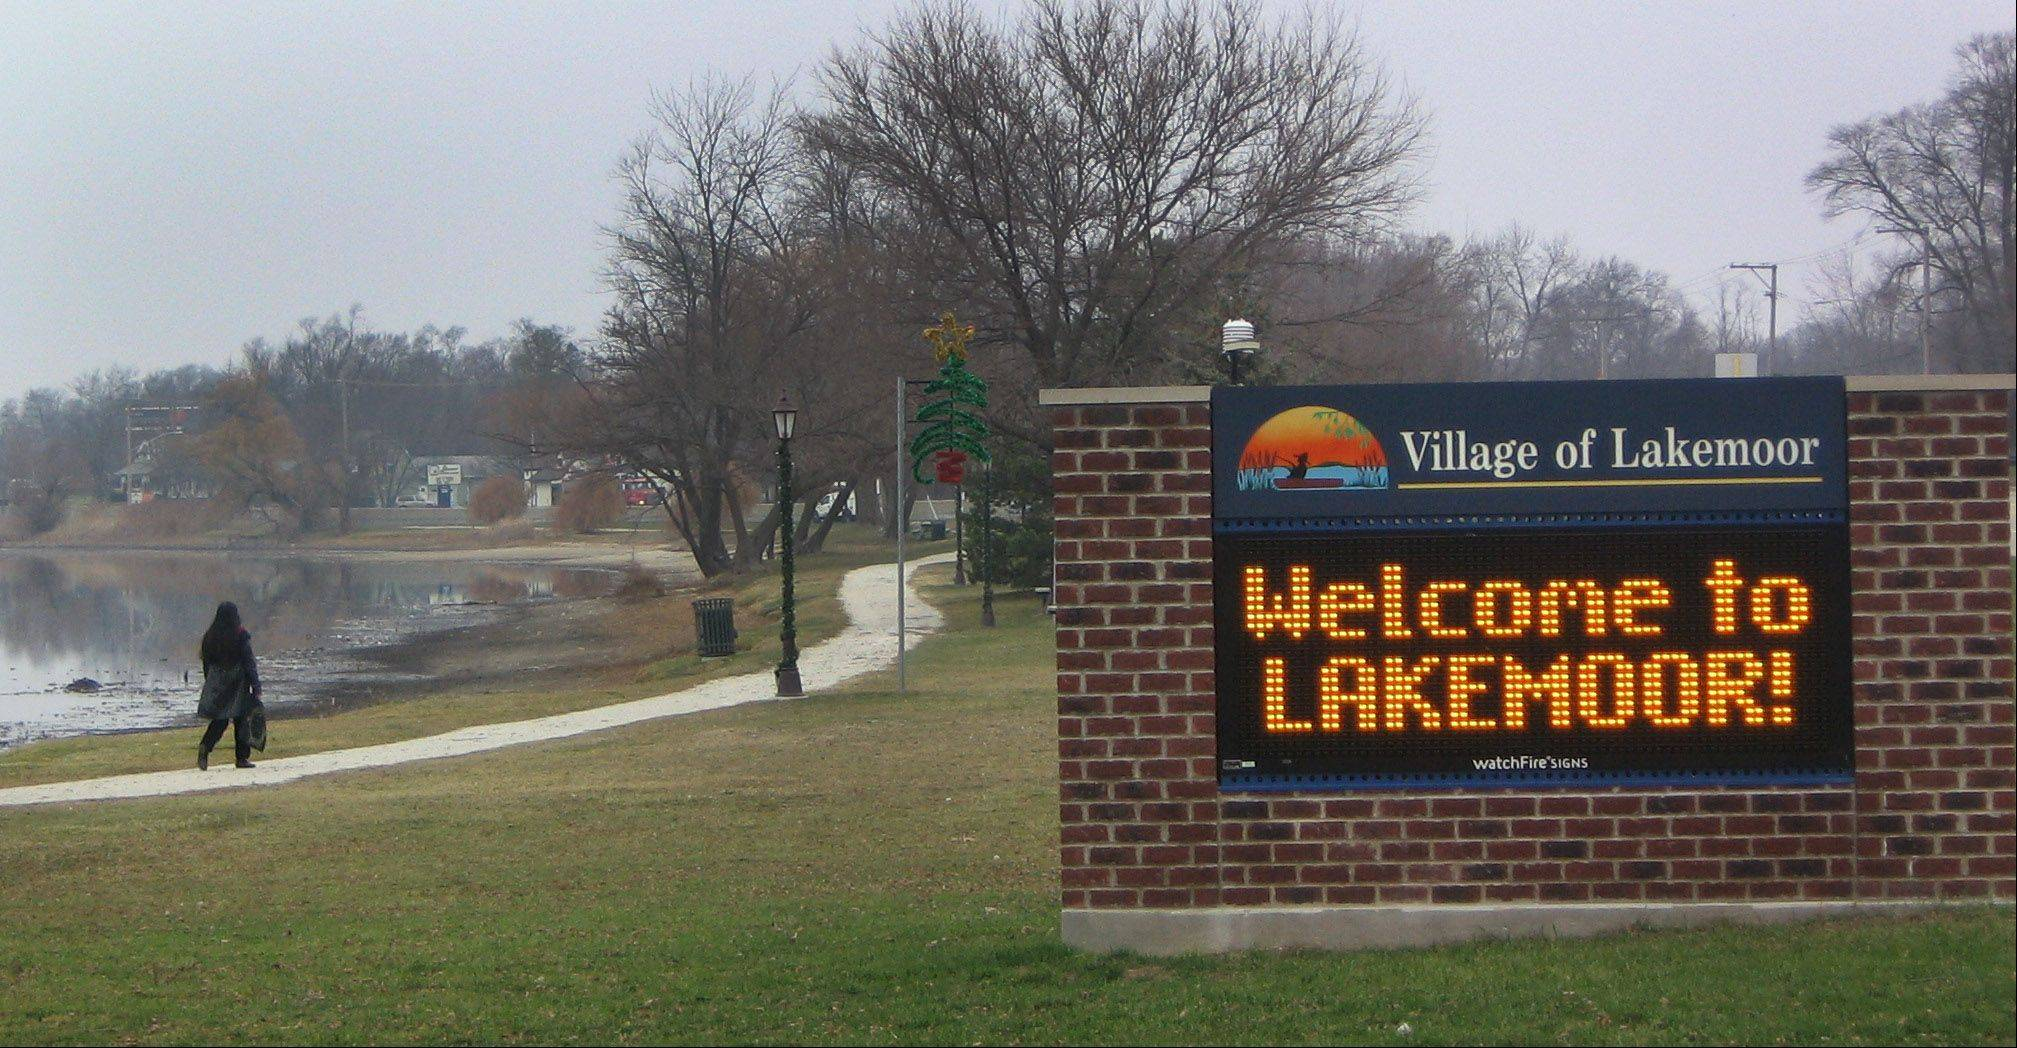 Long-range plan envisions Town Center for Lakemoor